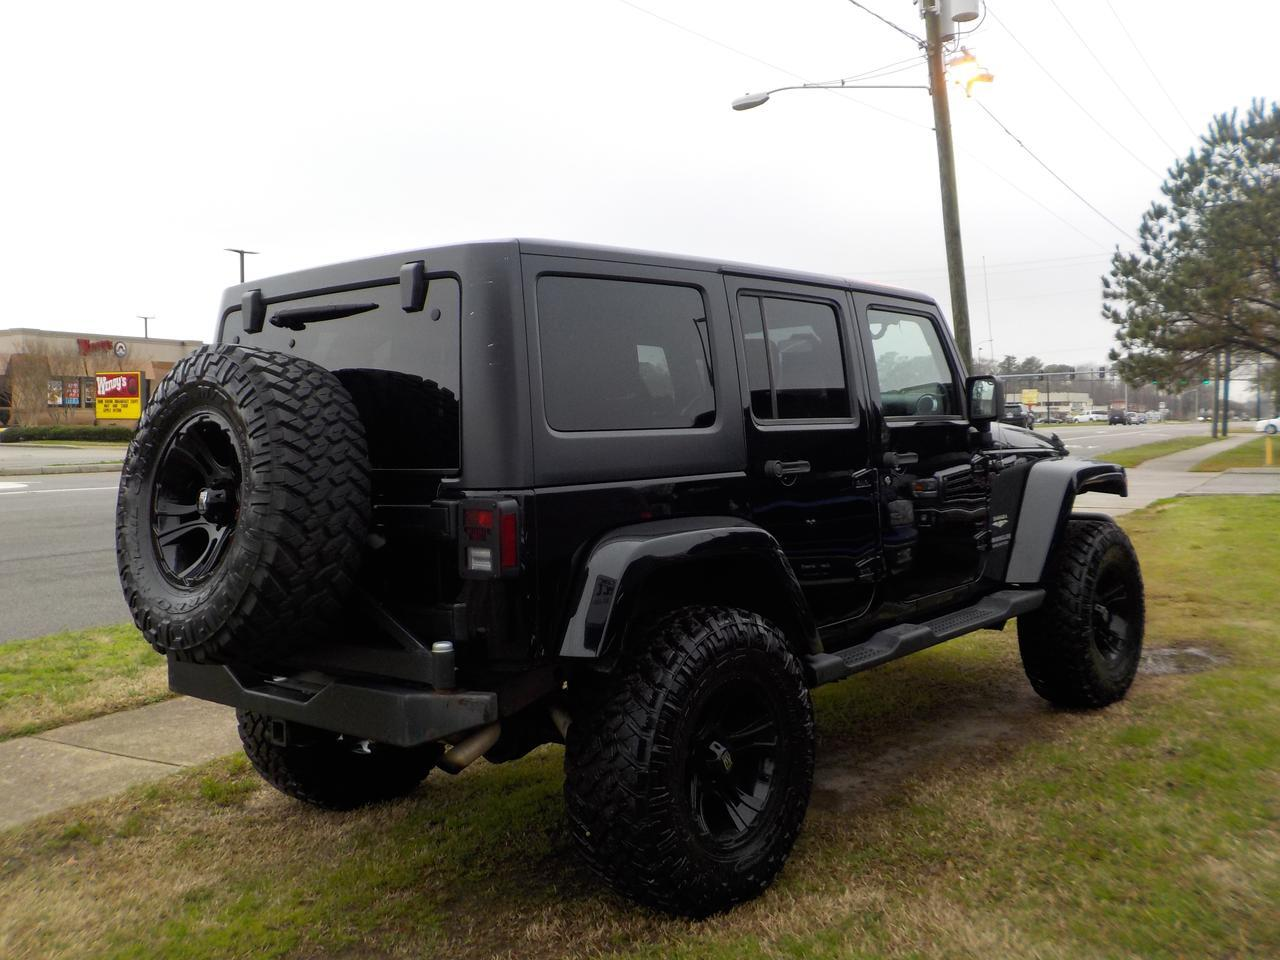 2011 JEEP WRANGLER SAHARA UNLIMITED 4X4, WARRANTY, CUSTOM BLACK XD SERIES RIMS, REMOTE START, HARD AND SOFT TOP! Virginia Beach VA